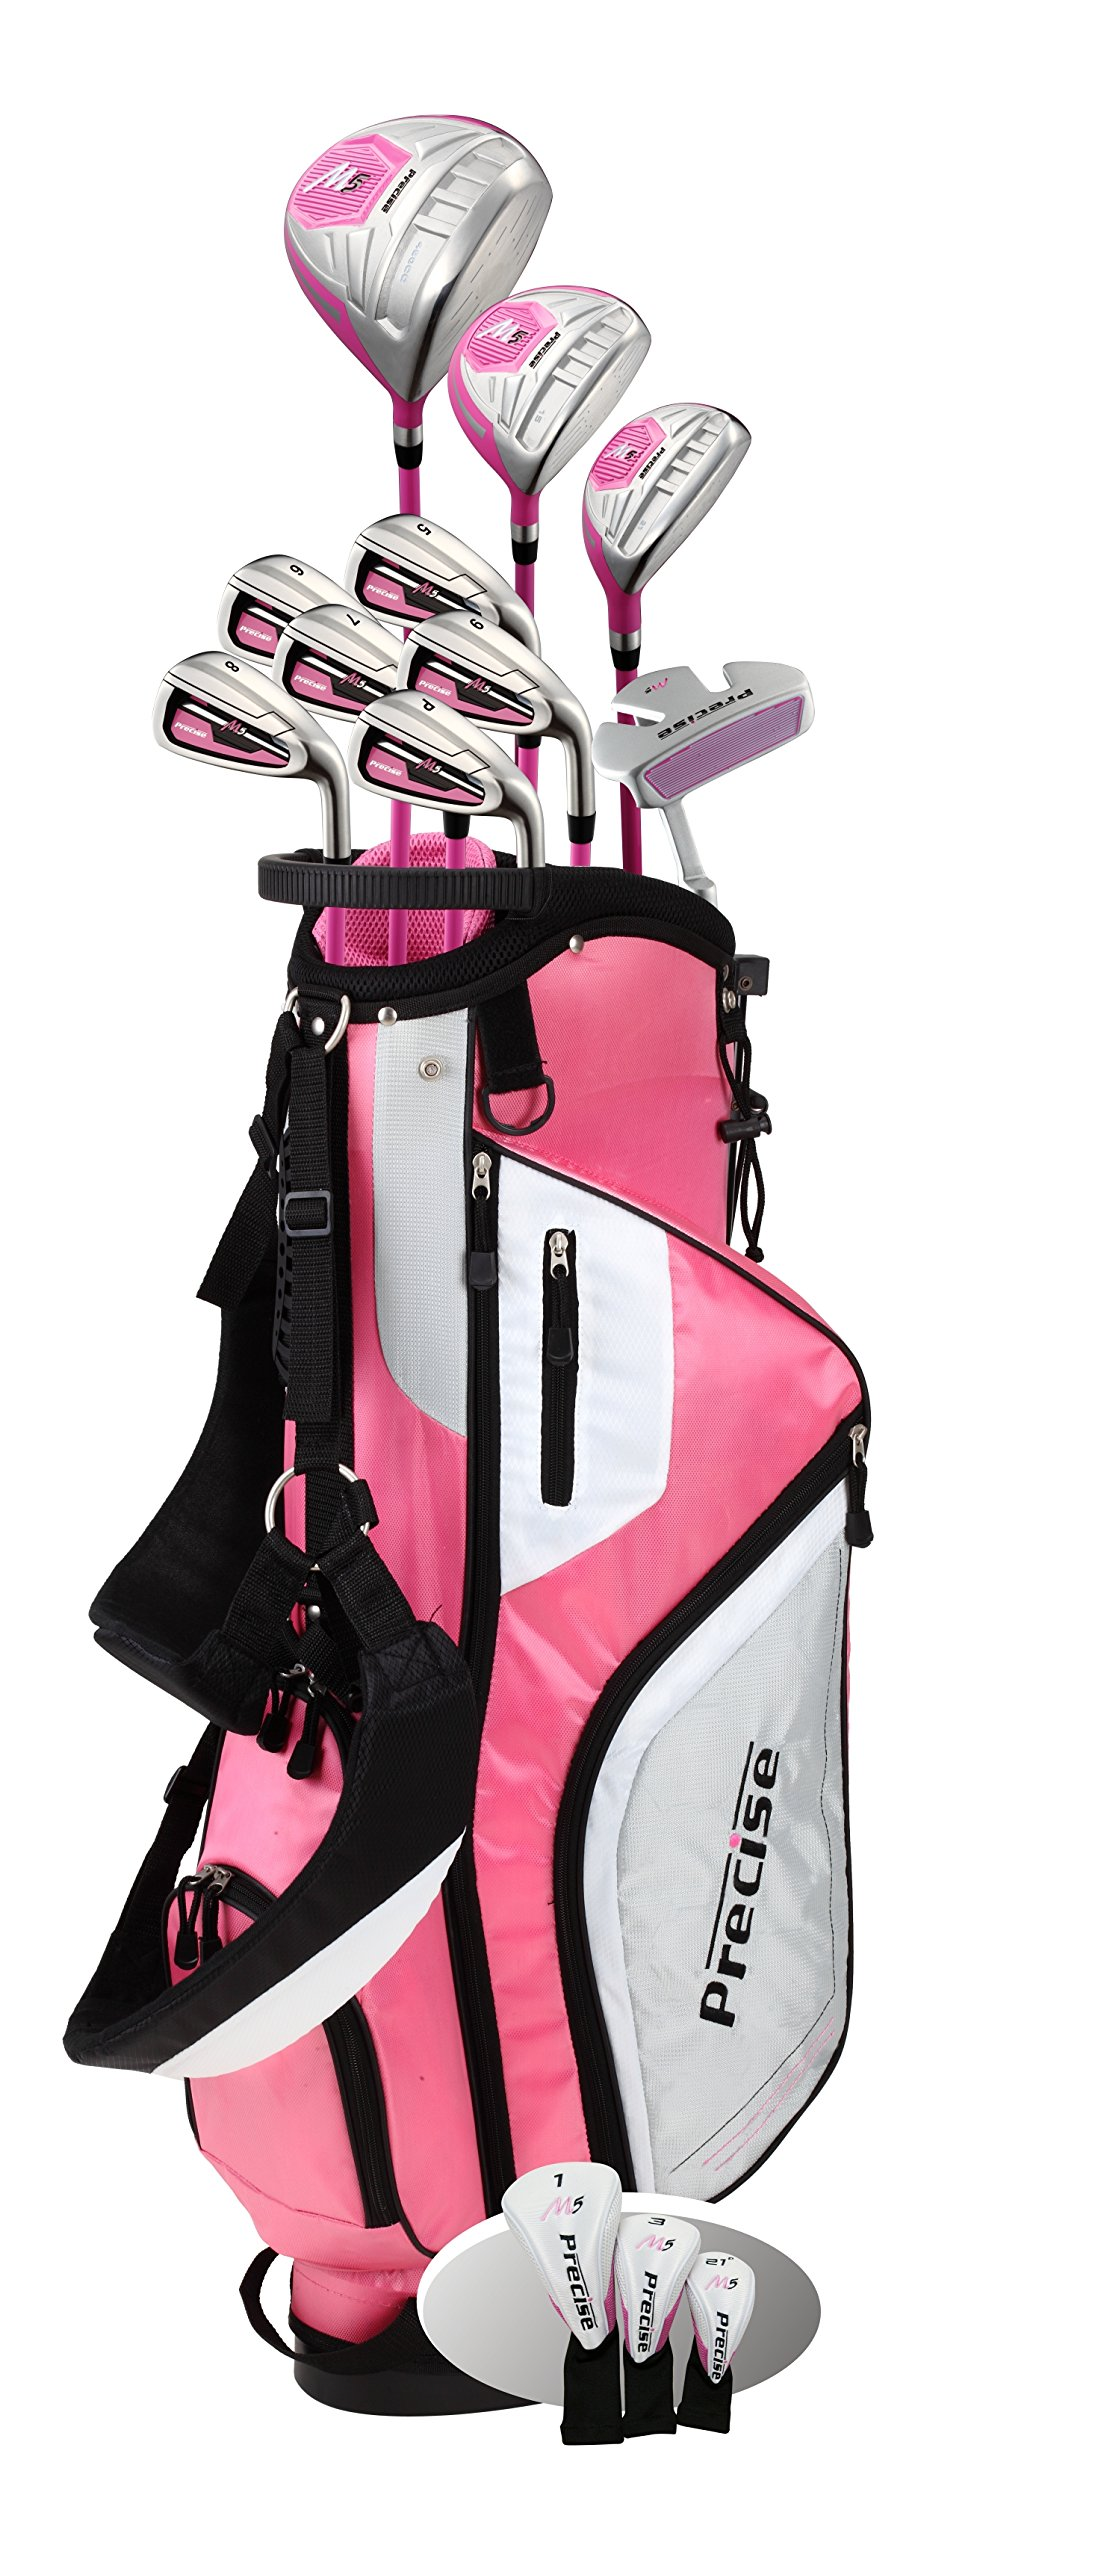 Top Line Ladies Pink Right Handed M5 Golf Club Set for Petite Ladies ( Height 5' to 5'3'' ) , Includes: Driver, Wood, Hybrid, 5,6,7,8,9, PW Stainless Irons, Putter, Graphite Shafts, Bag & 3 HCs by Precise